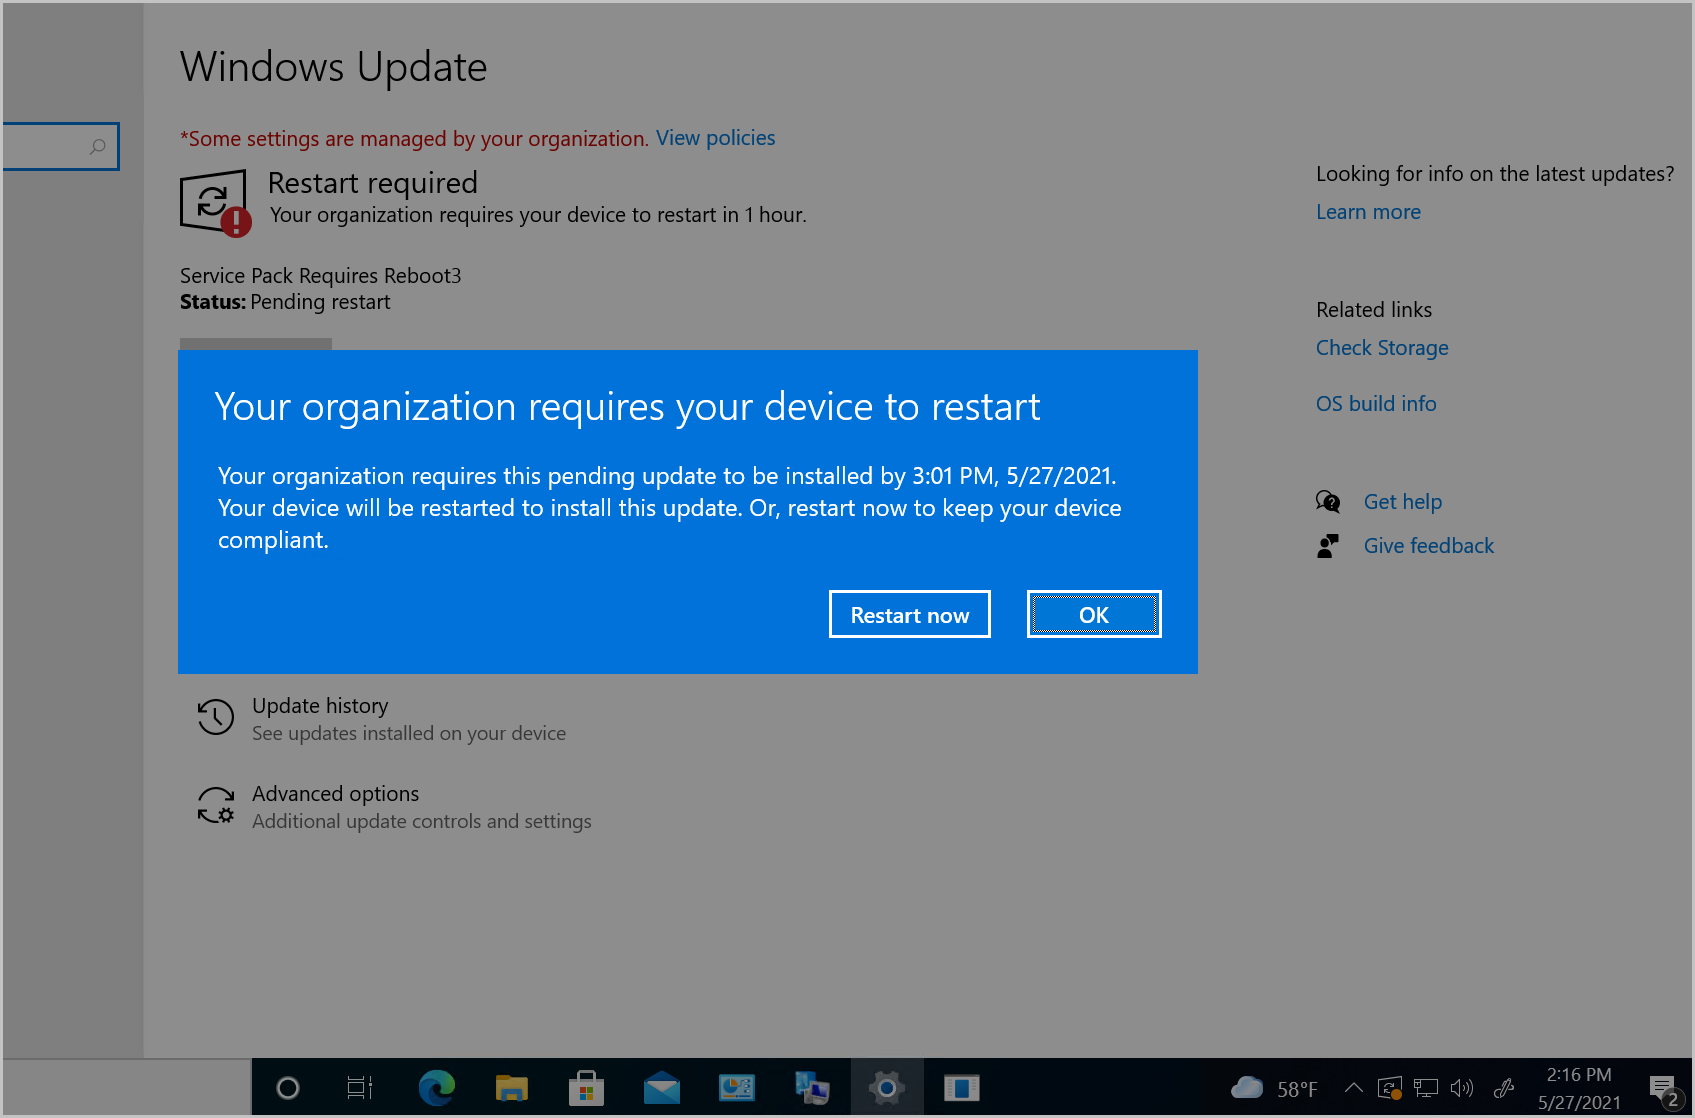 ConfigMgr 2105.2 Technical Preview New Features | SCCM